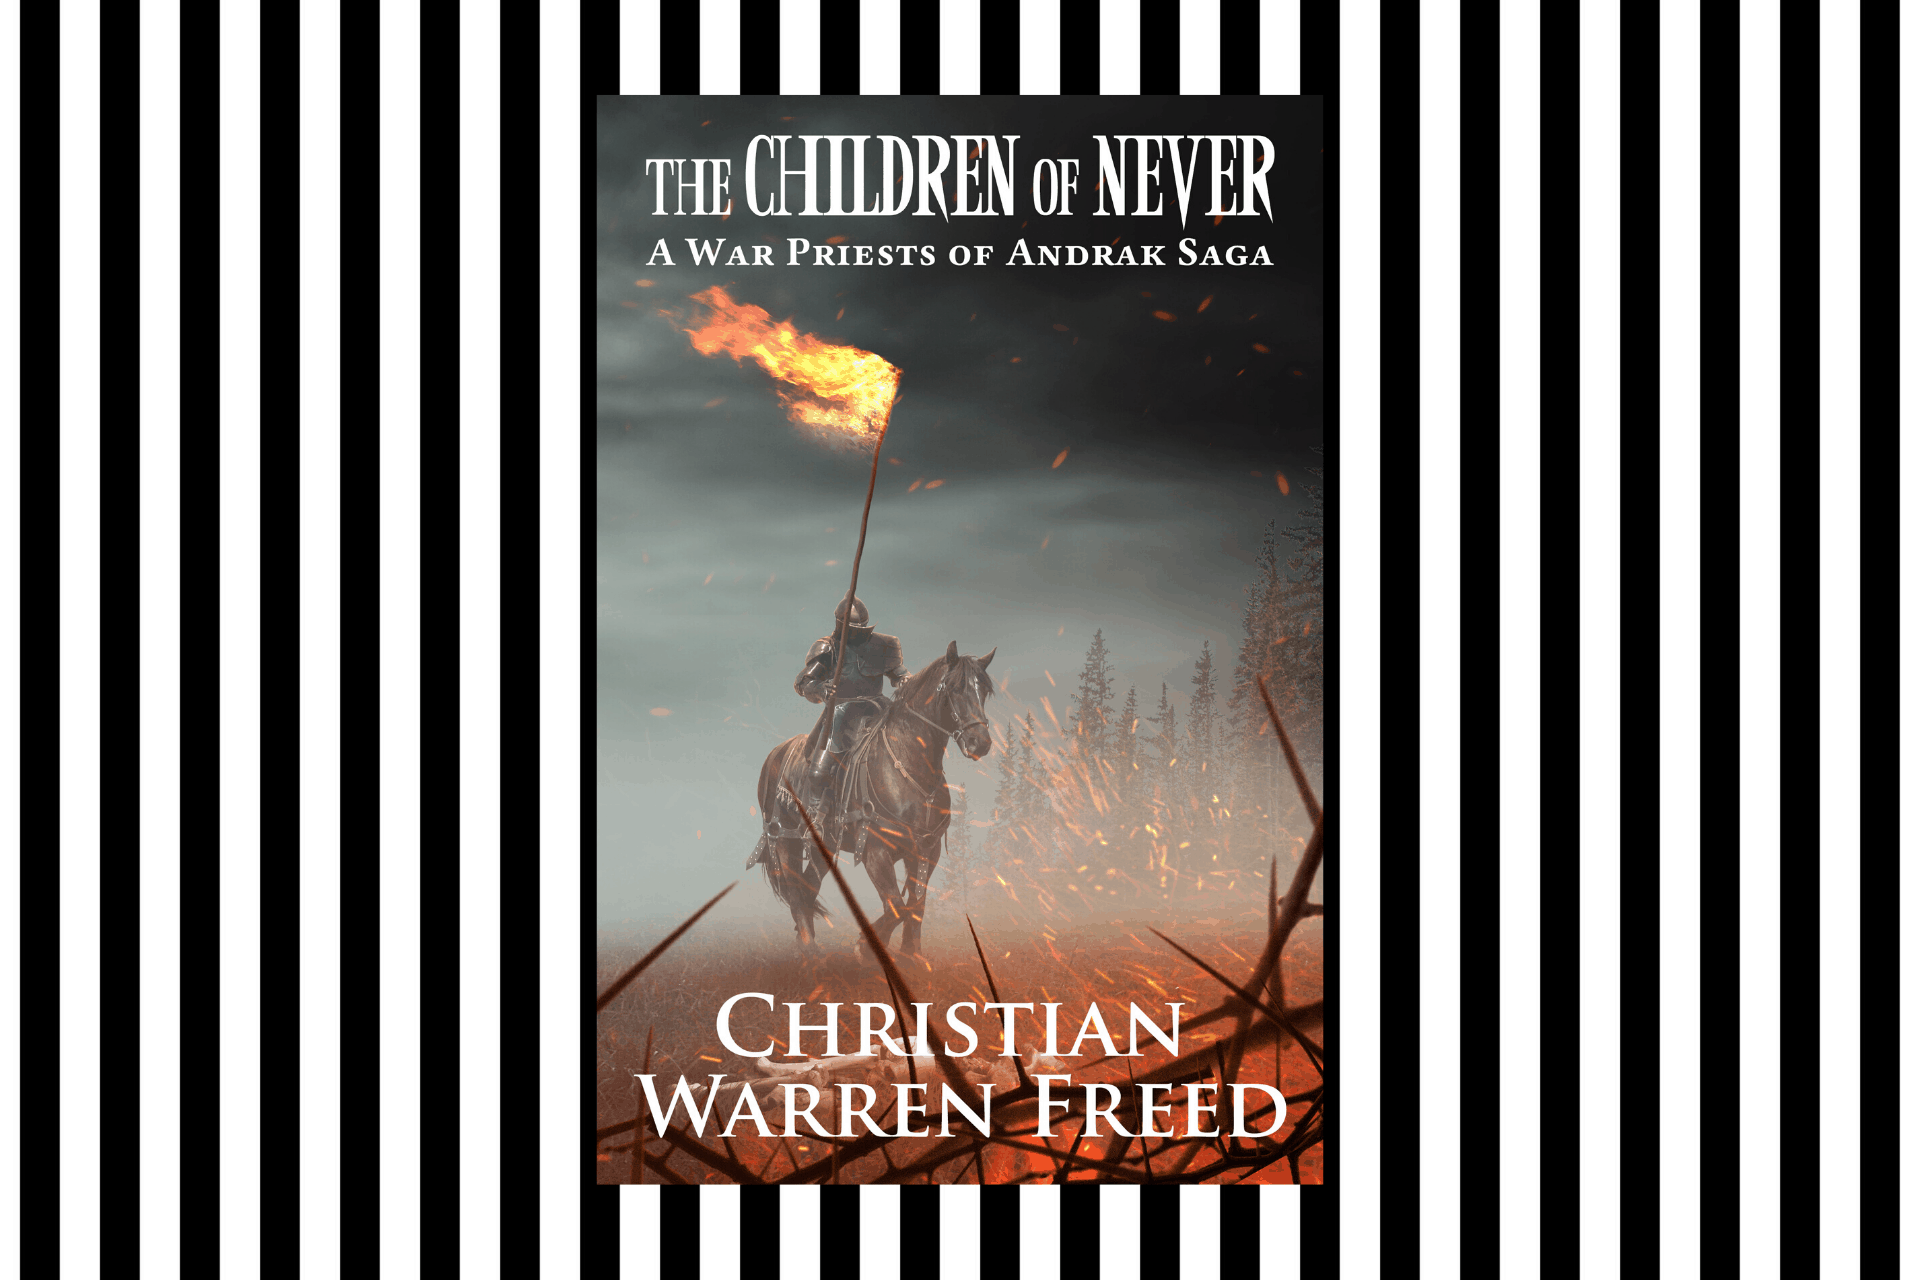 The Children of Never, part of the War Priests of Andrak Saga, by Christian Warren Freed